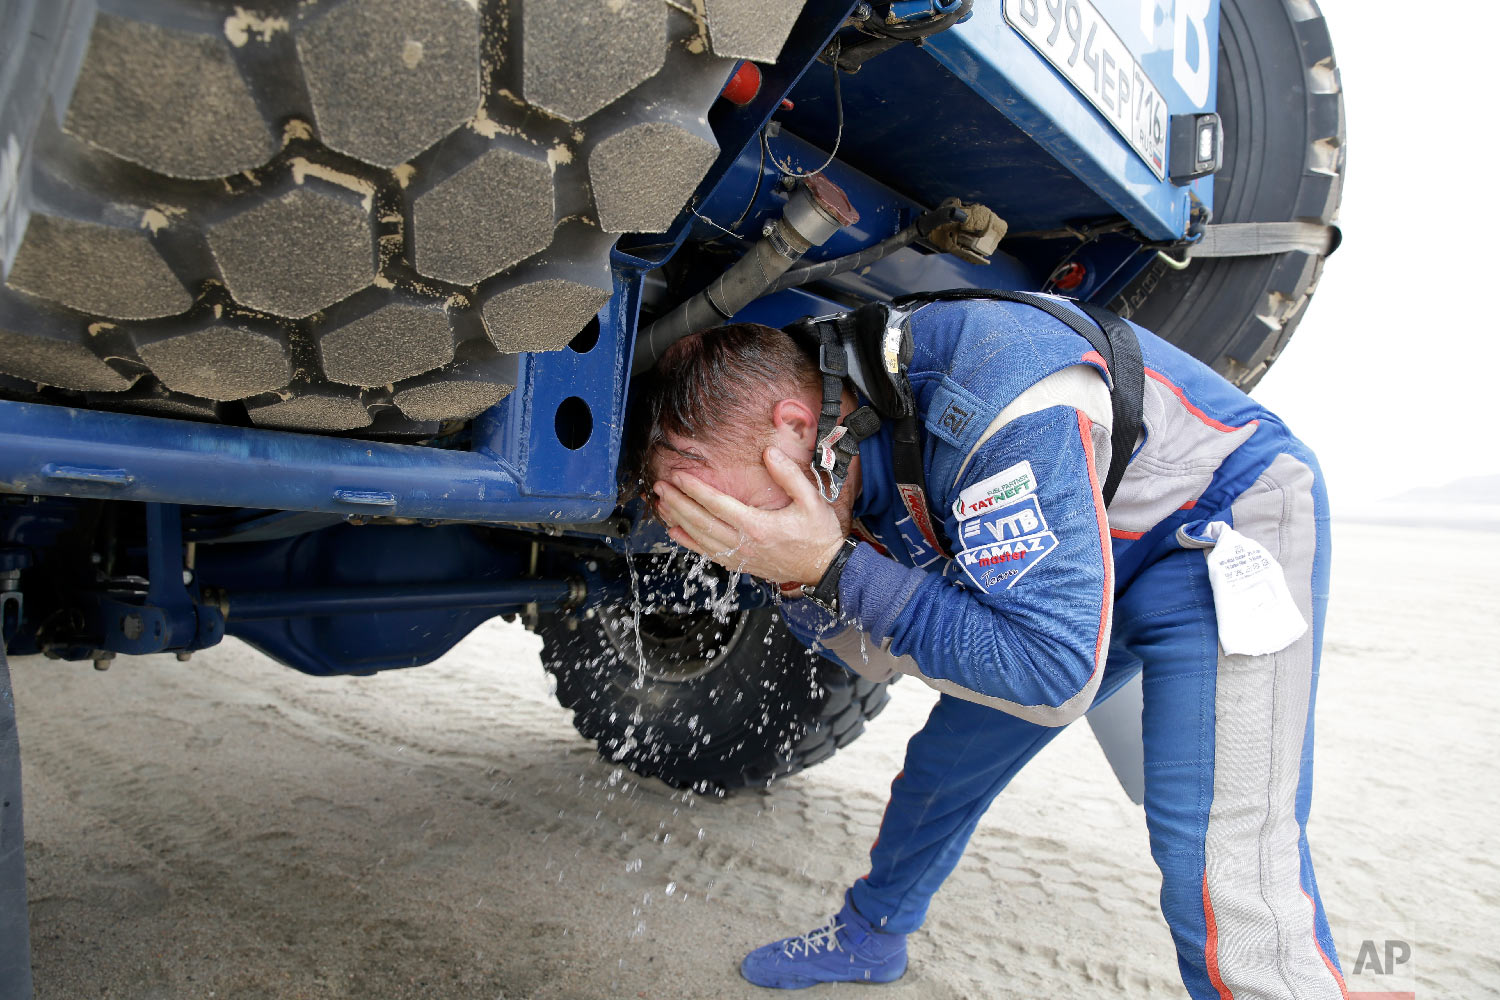 Kamaz truck driver Eduard Nikolaev, of Russia, refreshes at a stop during the stage eight of the Dakar Rally between San Juan de Marcona and Pisco, Peru, Jan. 15, 2019. (AP Photo/Ricardo Mazalan)